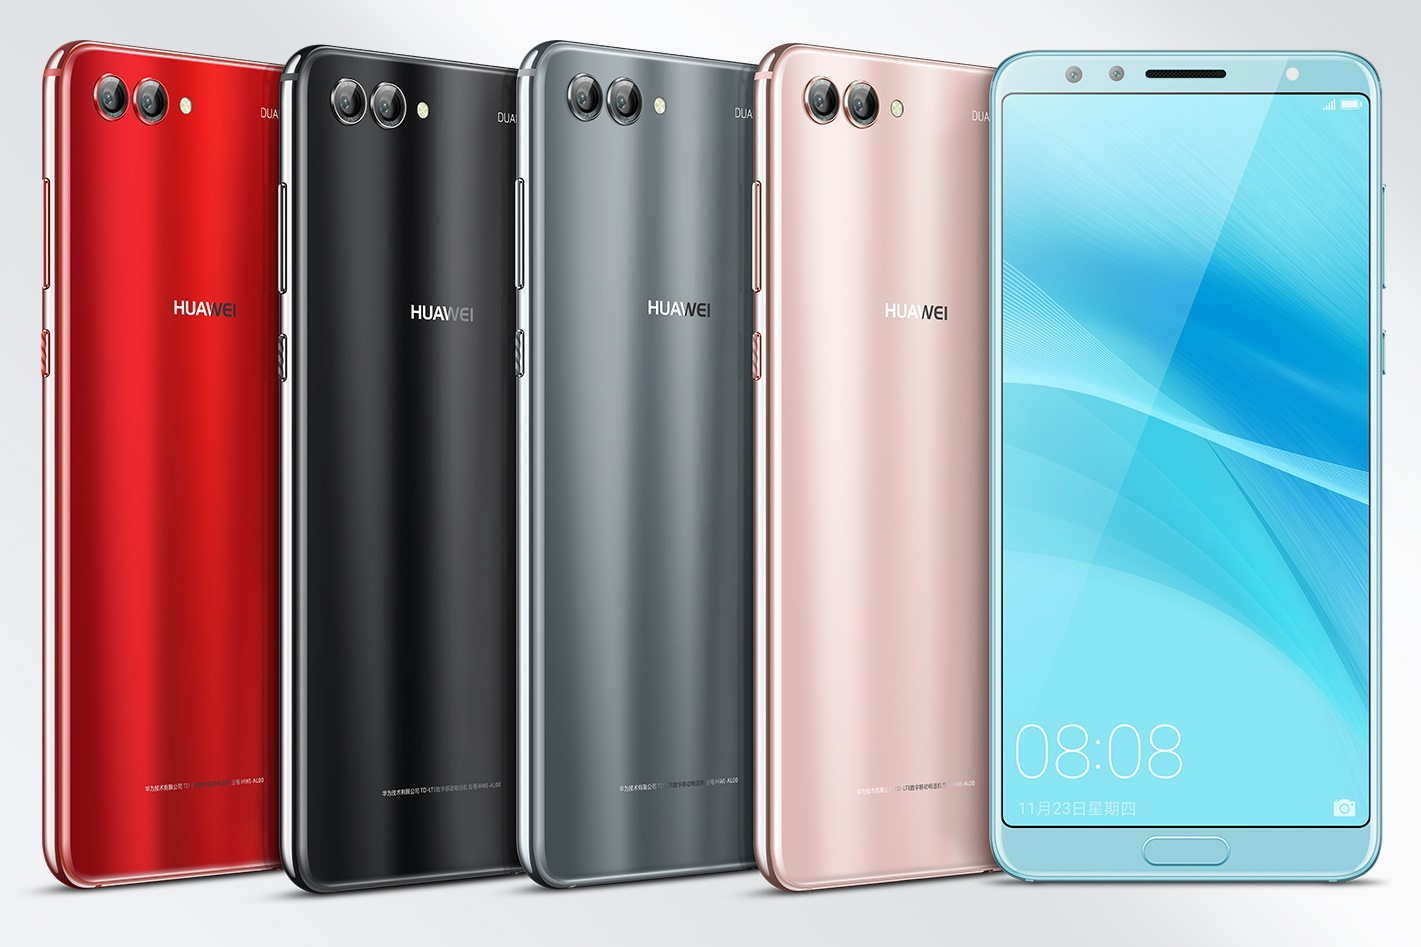 Huawei Mate 9 EMUI 8.0 update rolling out